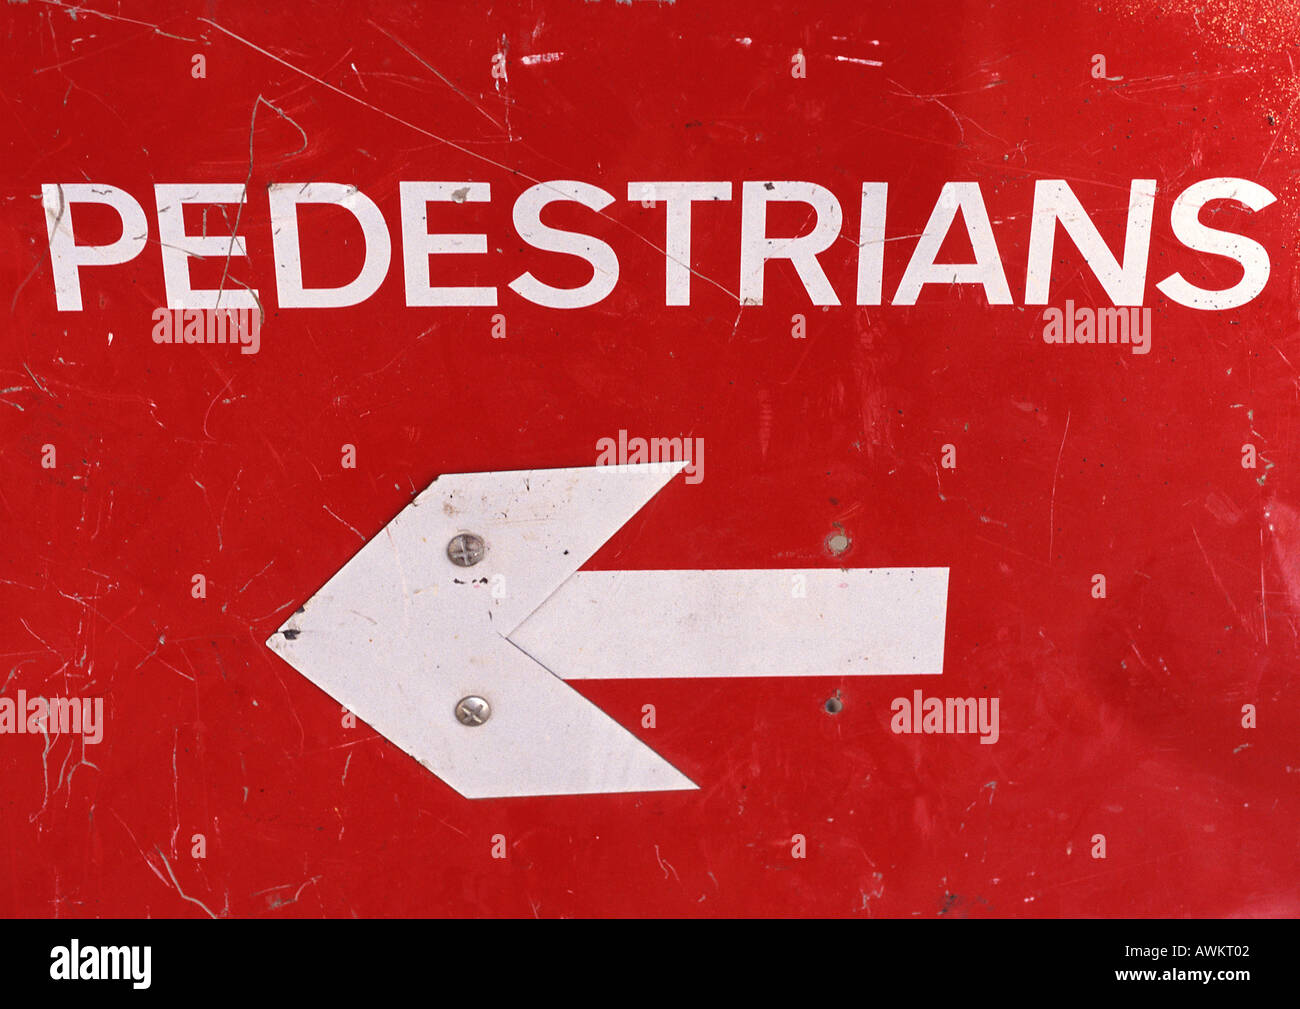 Directional sign for pedestrians, close-up - Stock Image